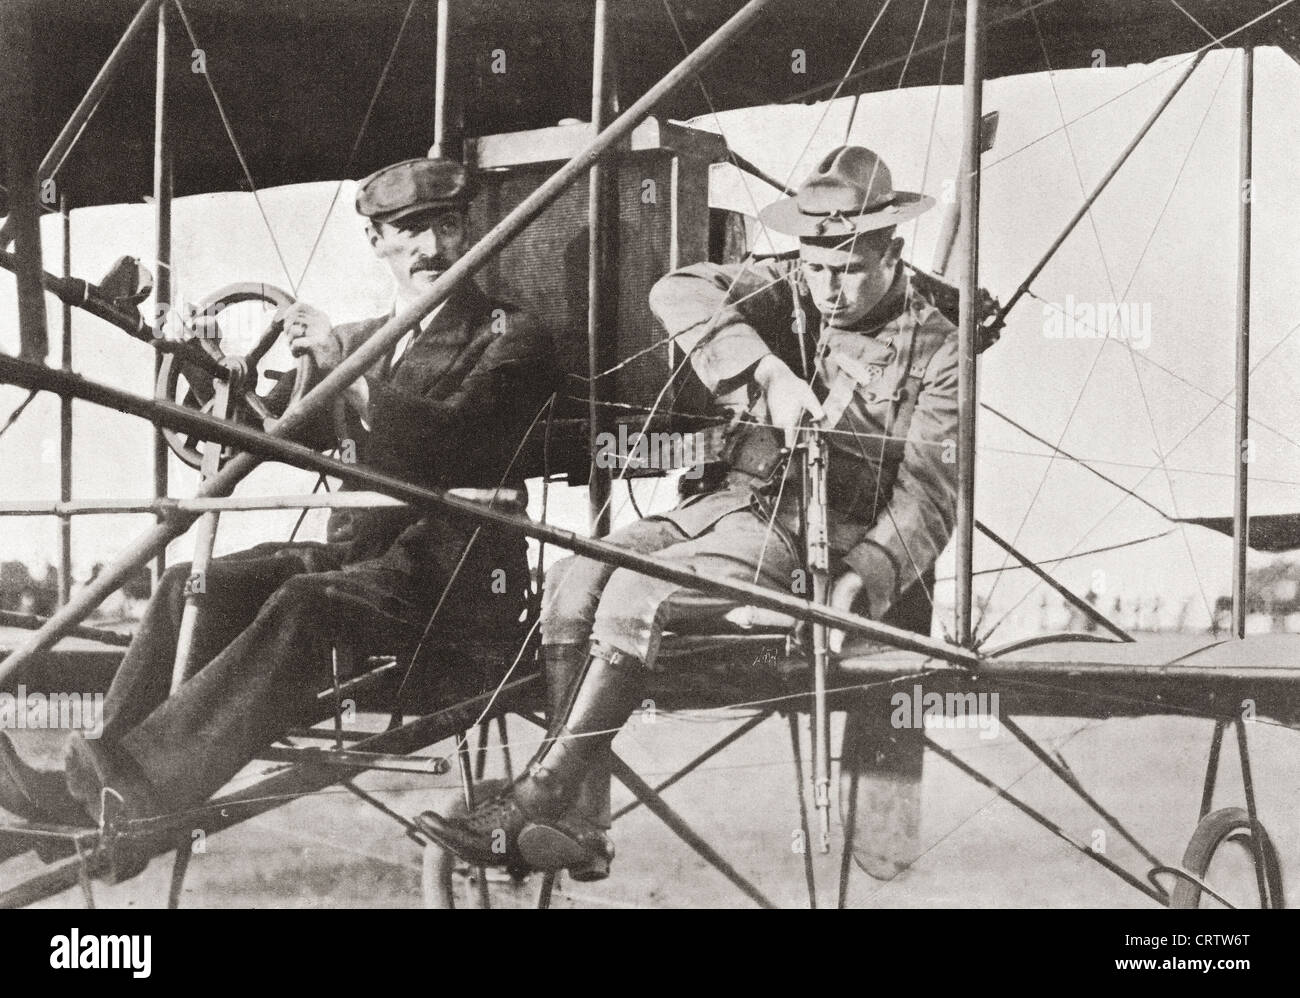 Air warfare during World War One. Aeroplane for raiding the enemy. From The Year 1914 Illustrated. - Stock Image